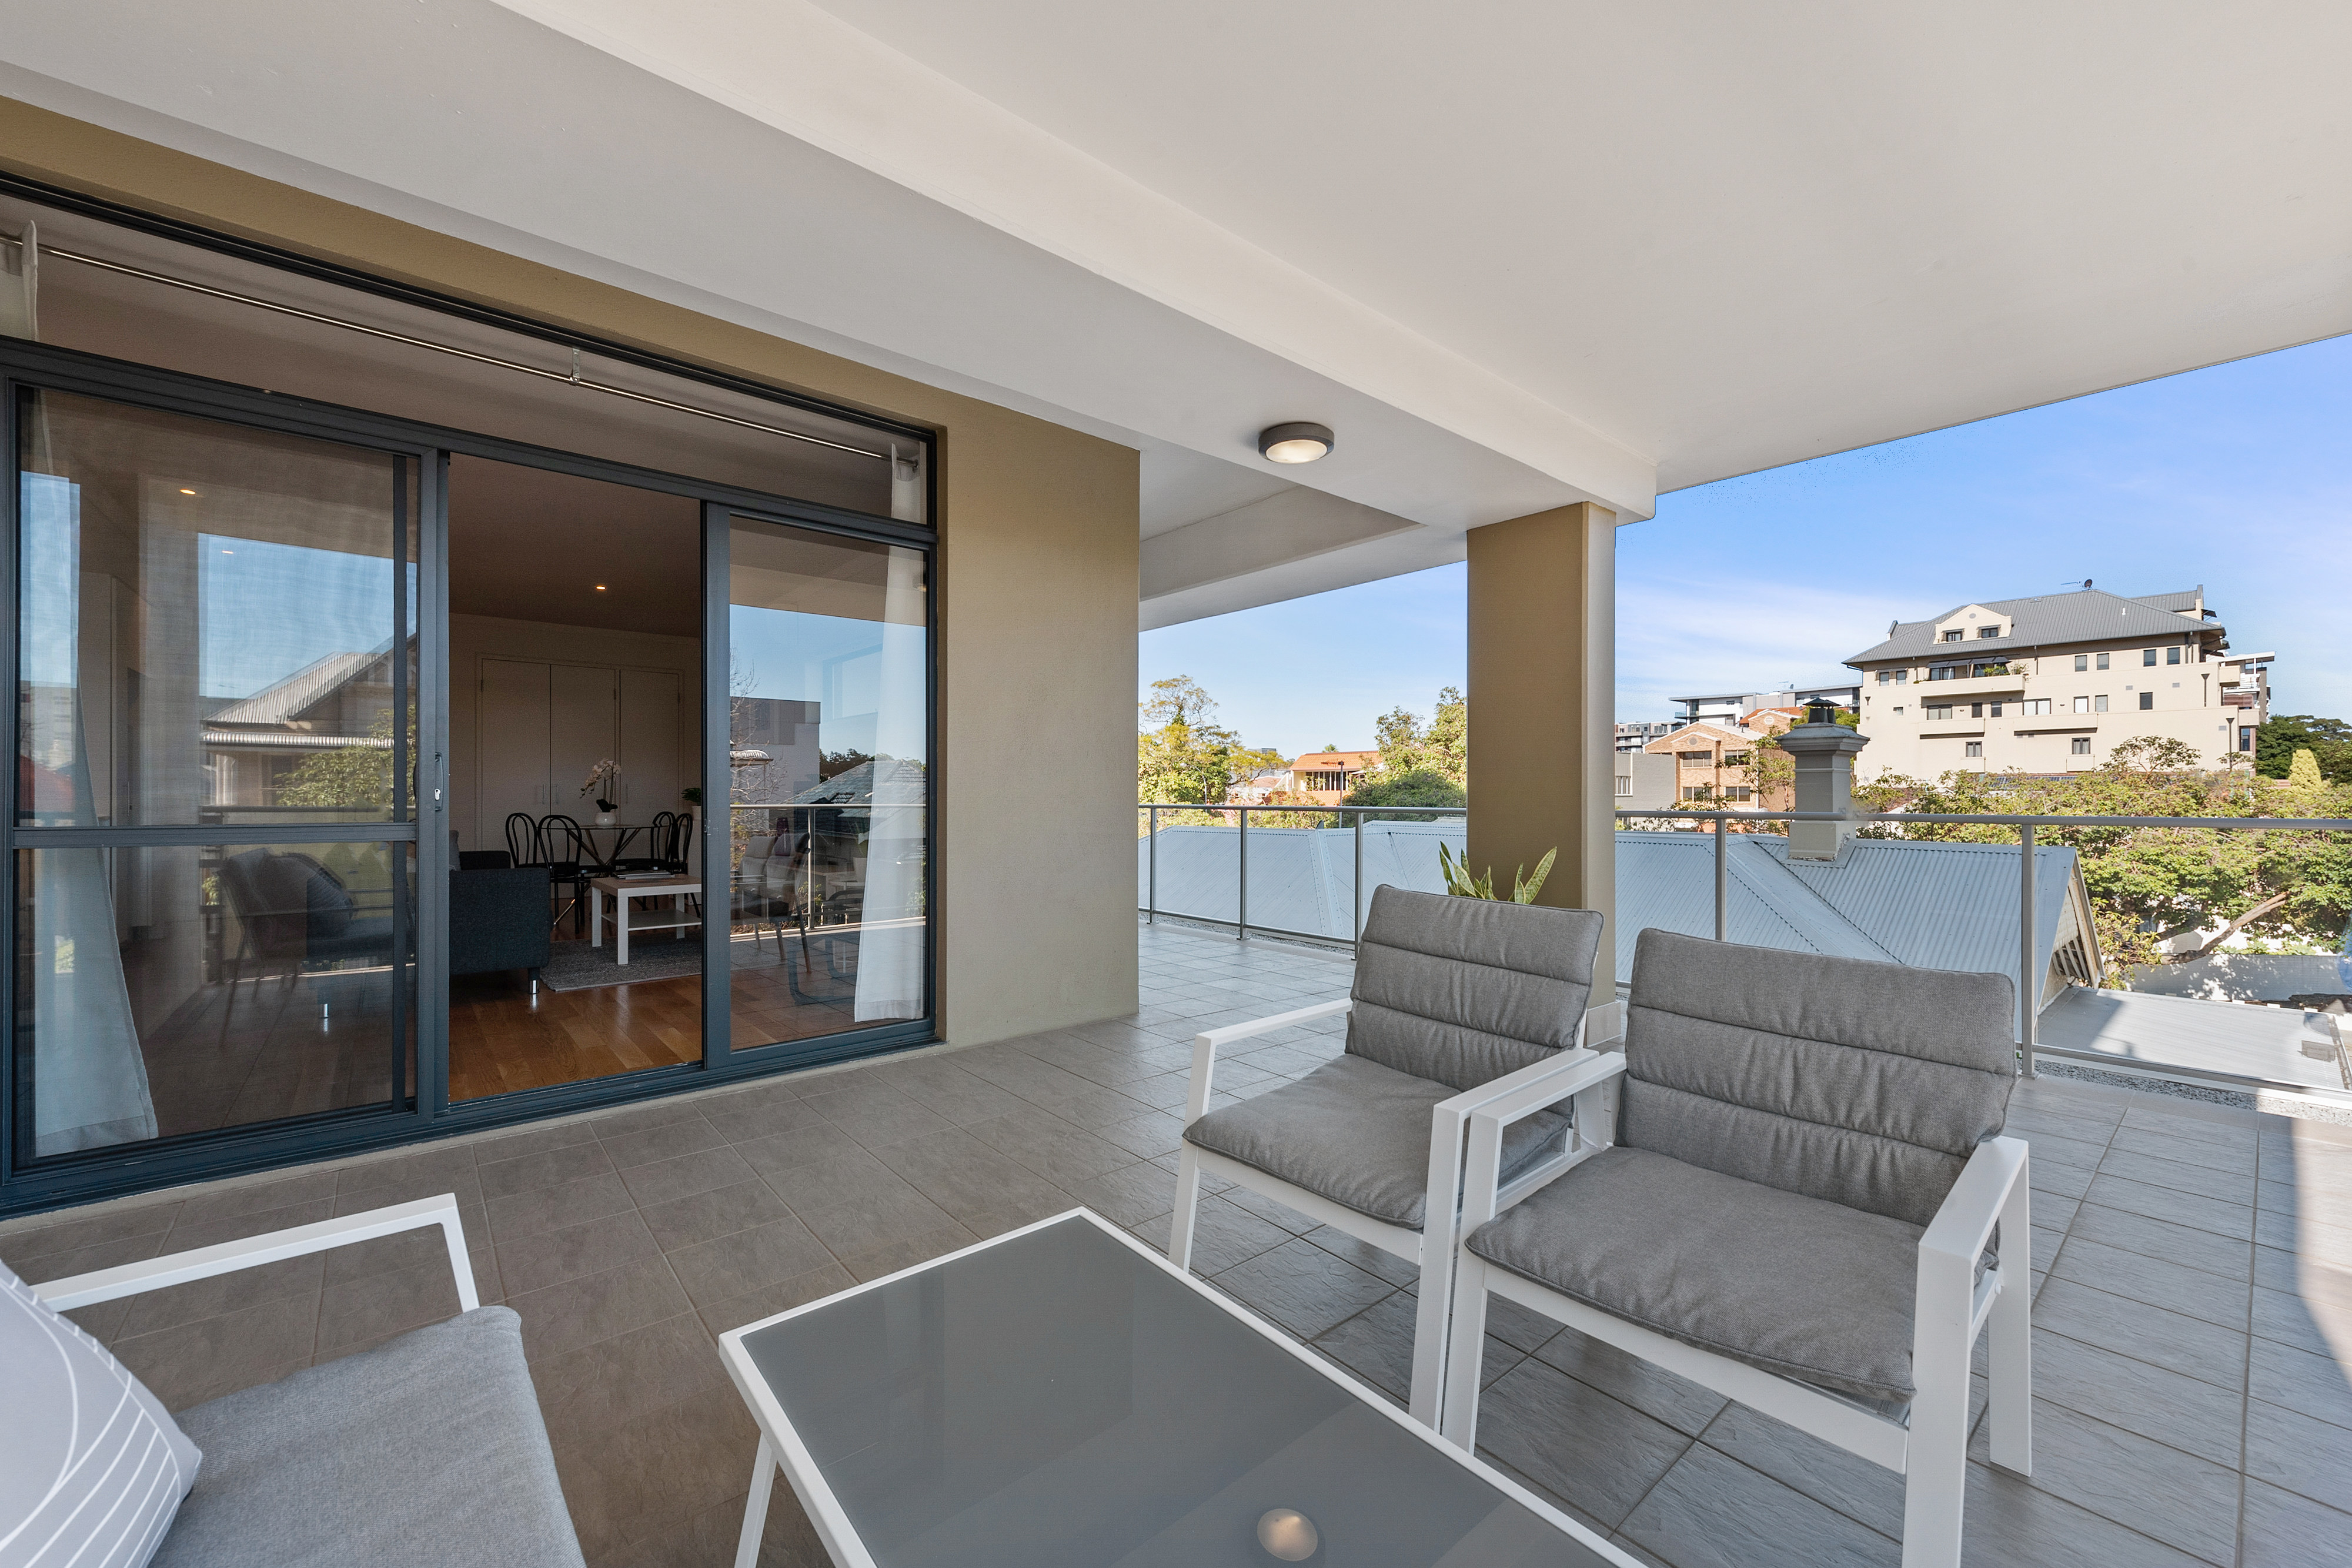 PRINT 202 48 Outram St, West Perth 18